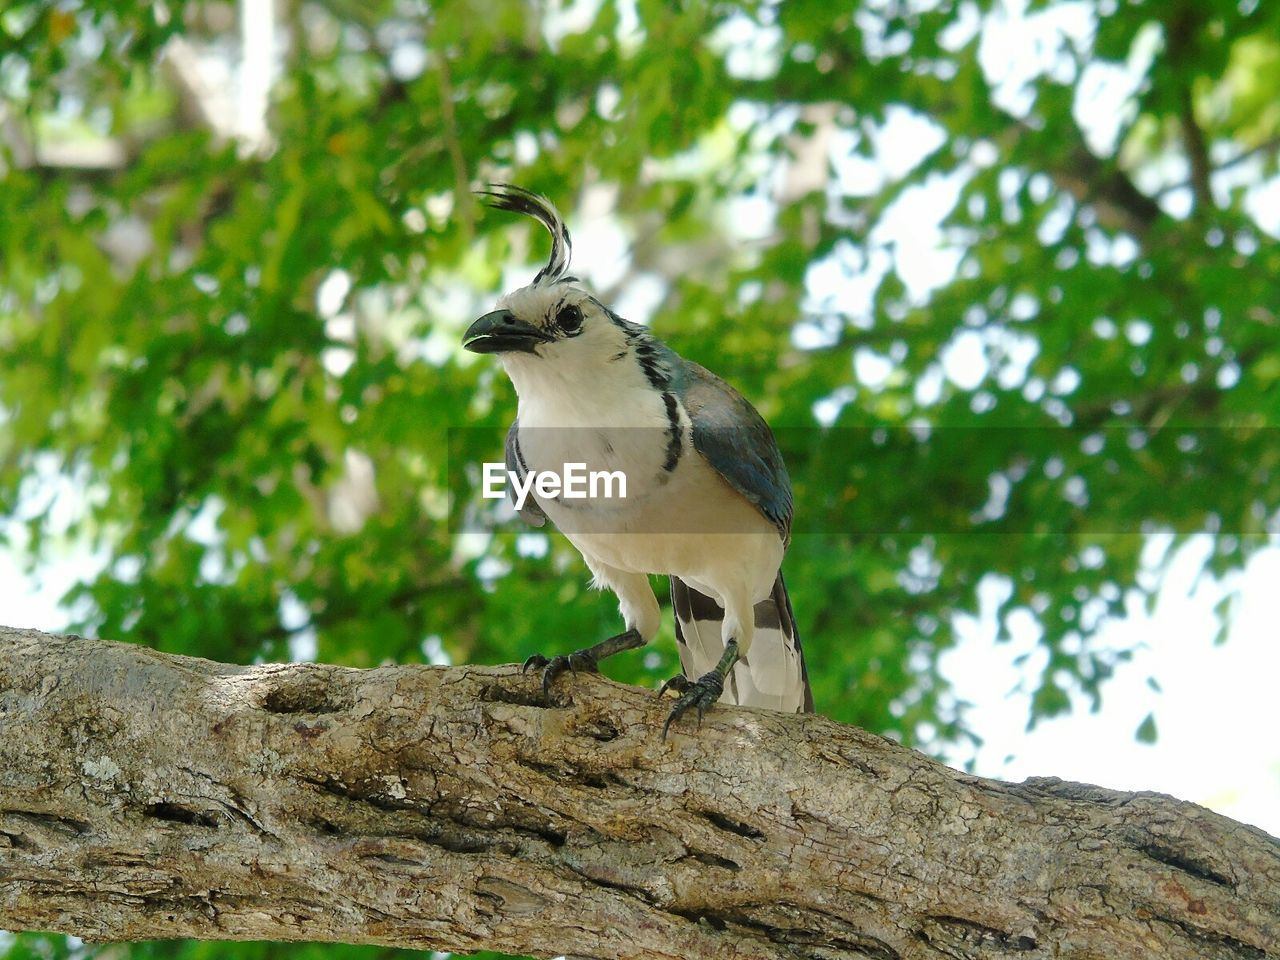 vertebrate, animal themes, animals in the wild, animal wildlife, animal, low angle view, one animal, tree, bird, perching, plant, no people, nature, branch, focus on foreground, day, outdoors, wood - material, woodpecker, sky